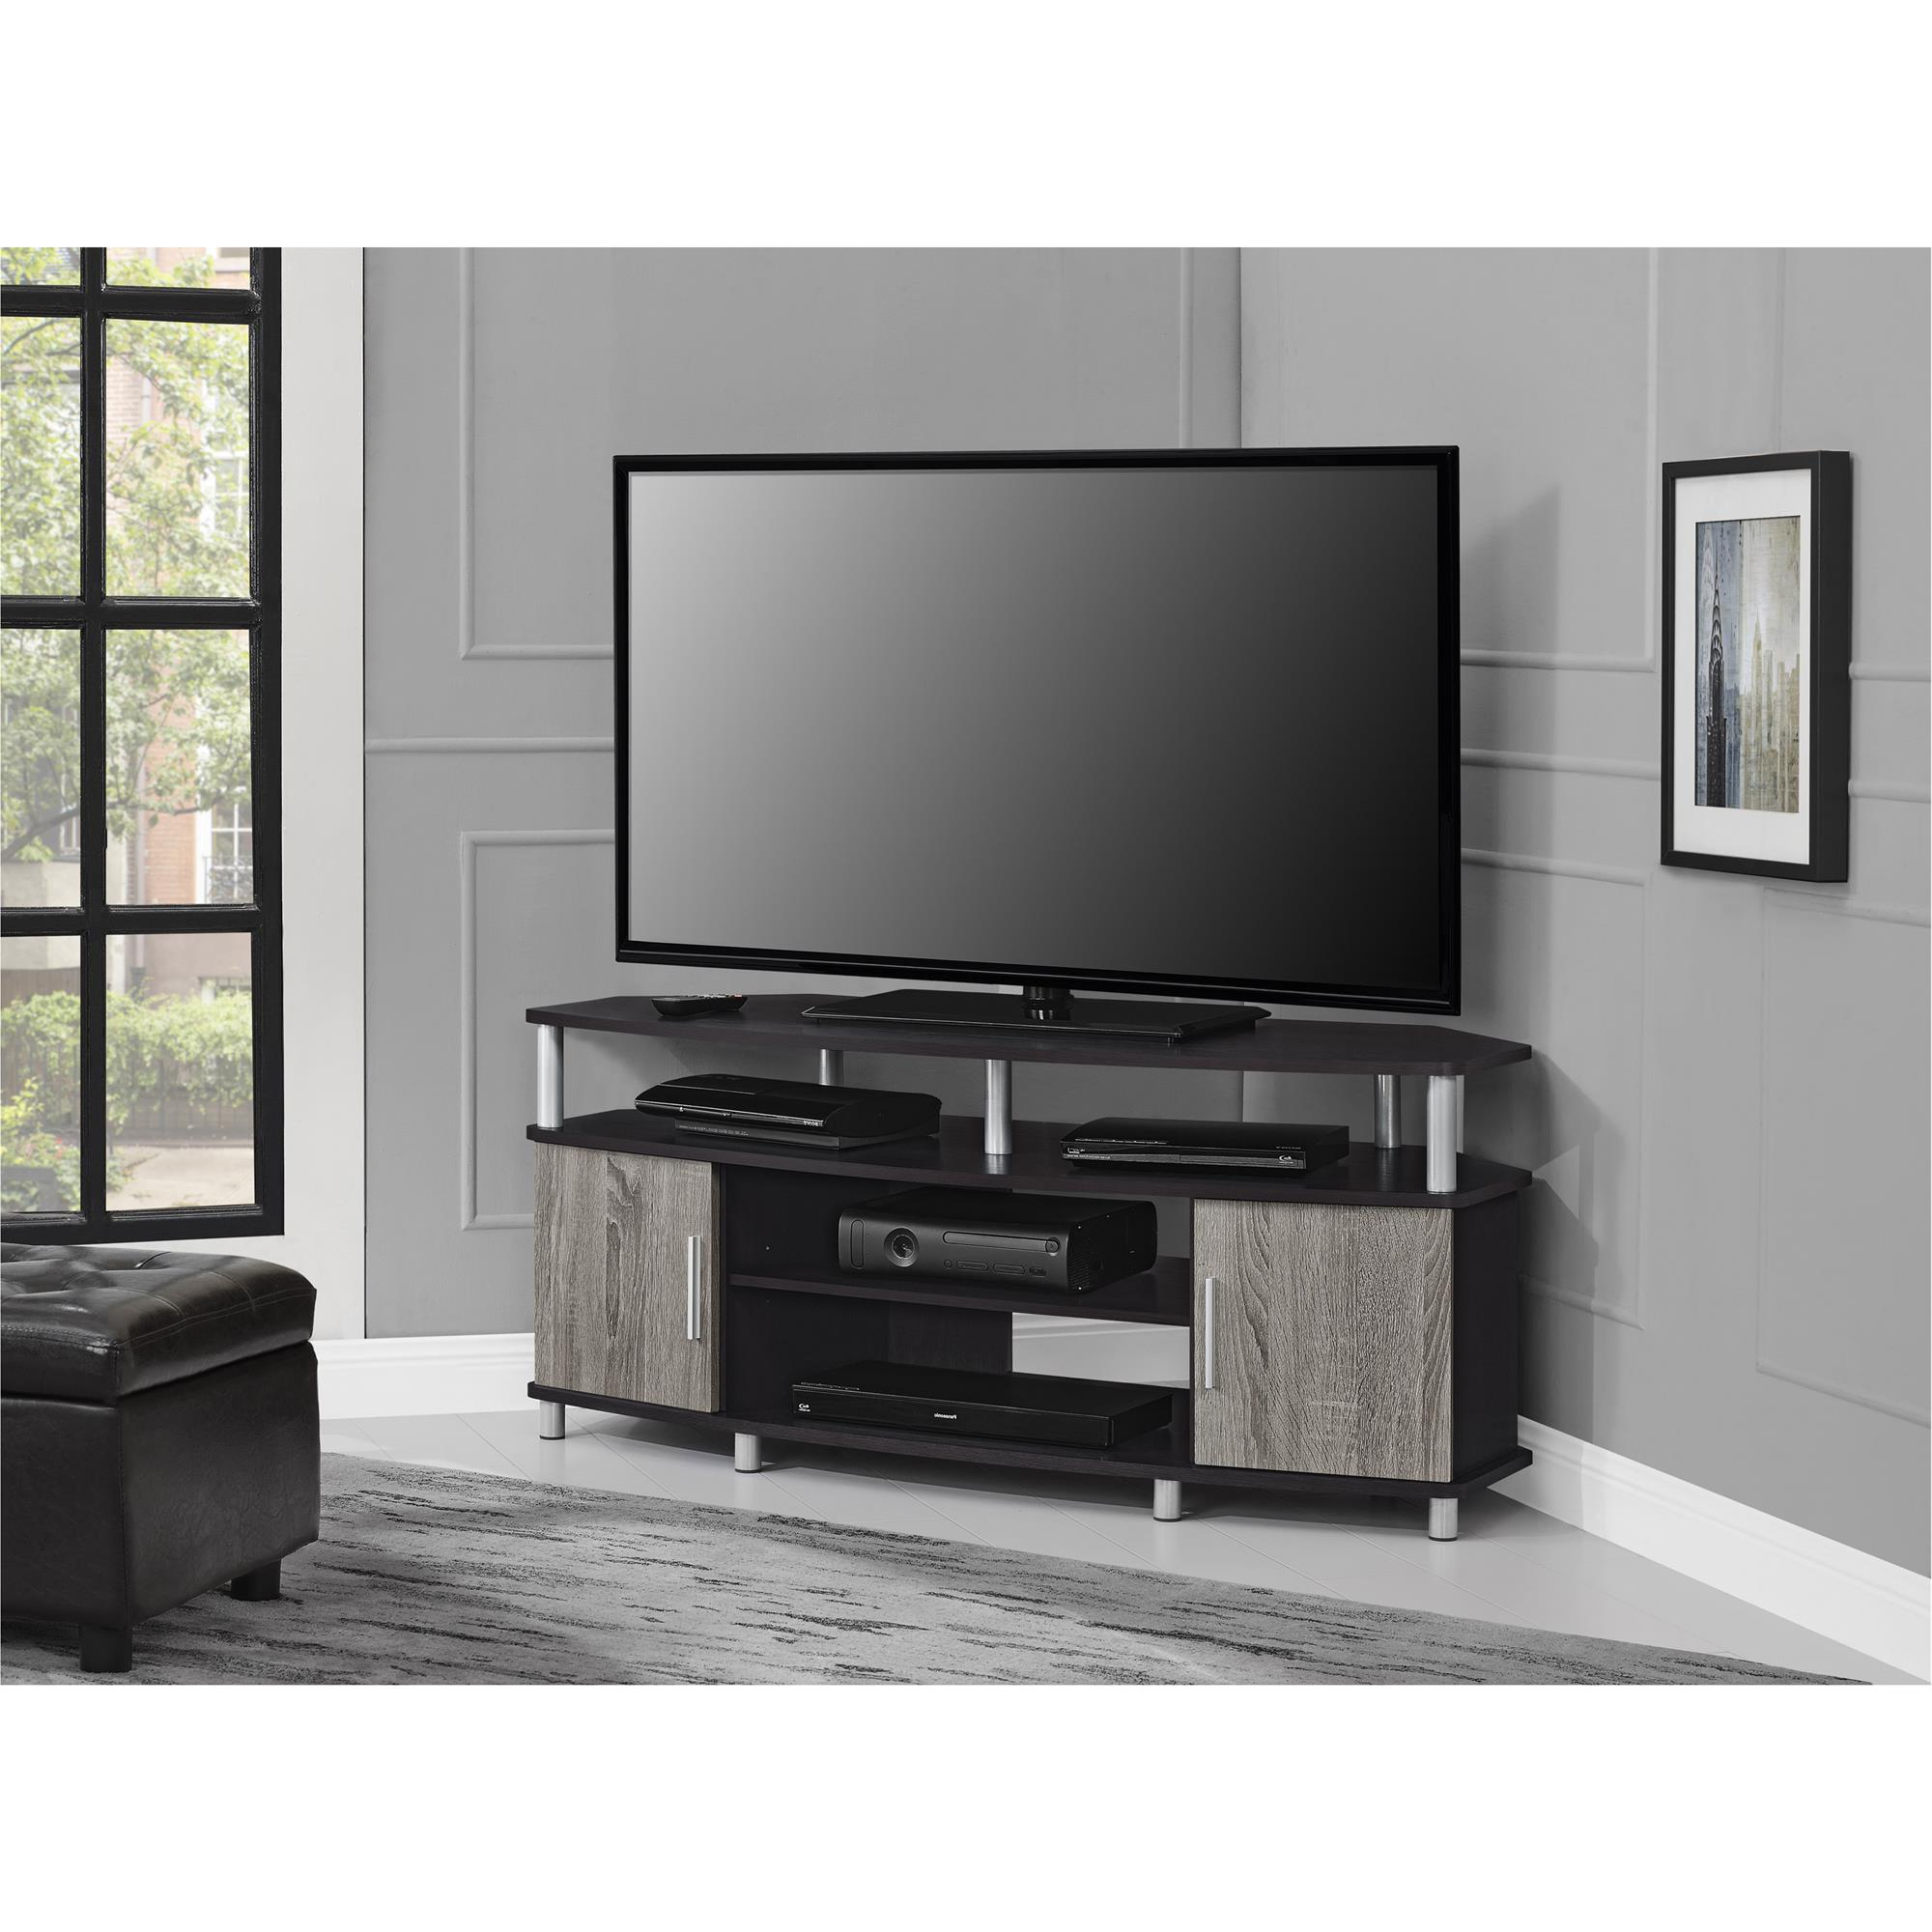 "Tv Stands For 55 Inch Tv Within Most Popular Ameriwood Home Carson Corner Tv Stand For Tvs Up To 50"" Wide, Black (View 4 of 20)"